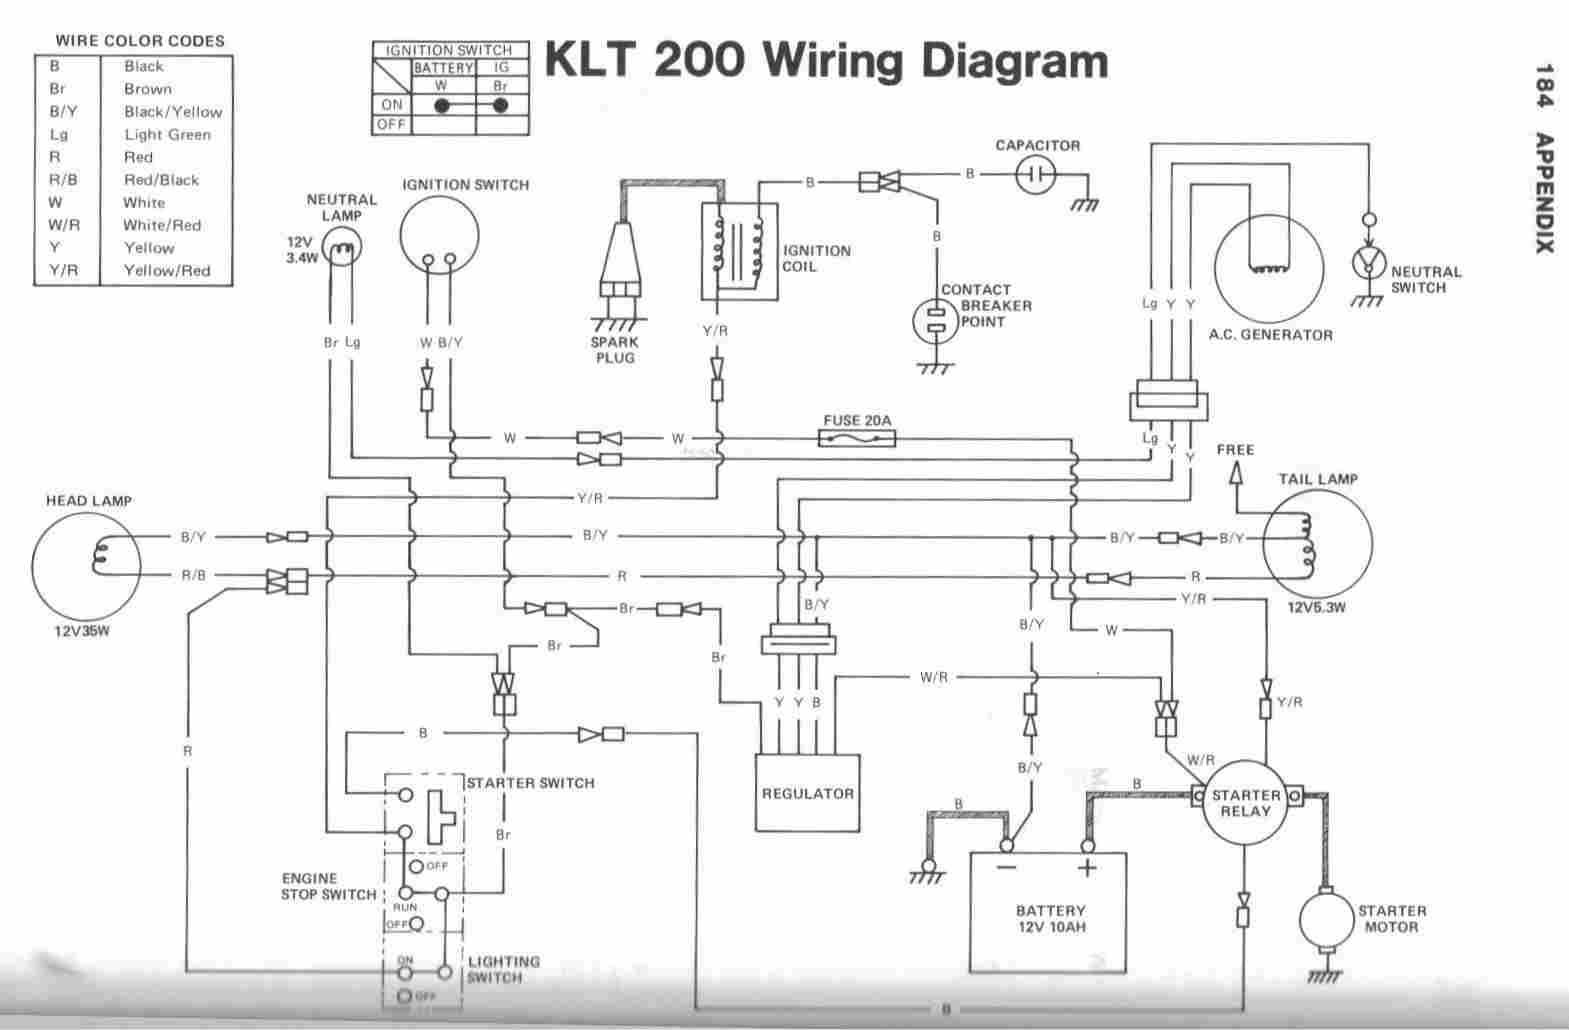 Residential electrical wiring diagrams pdf easy routing for Household electrical wiring design